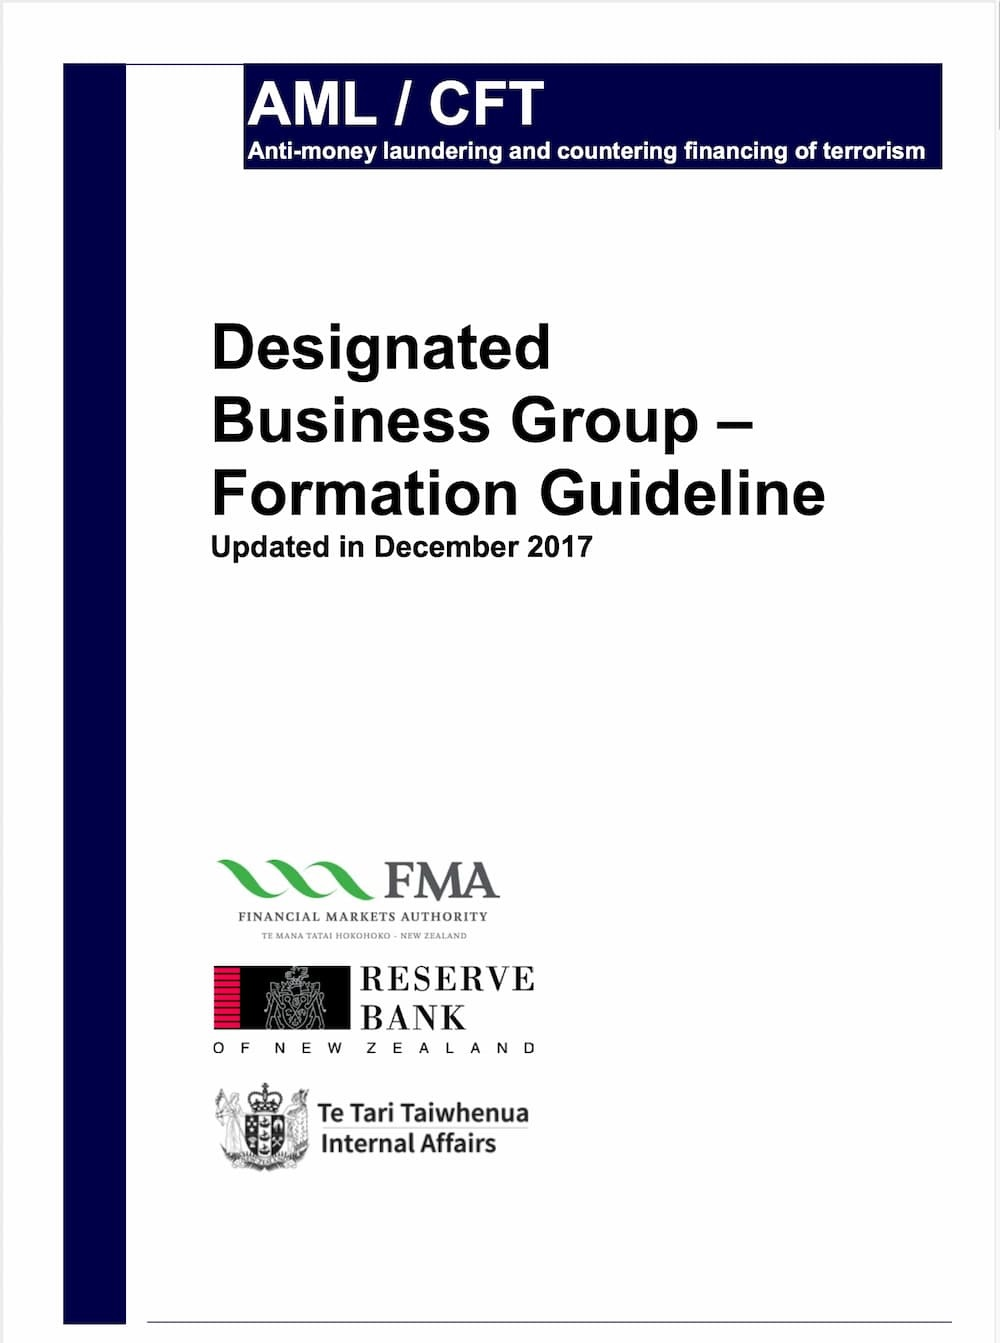 Designated Business Group Formation Guideline